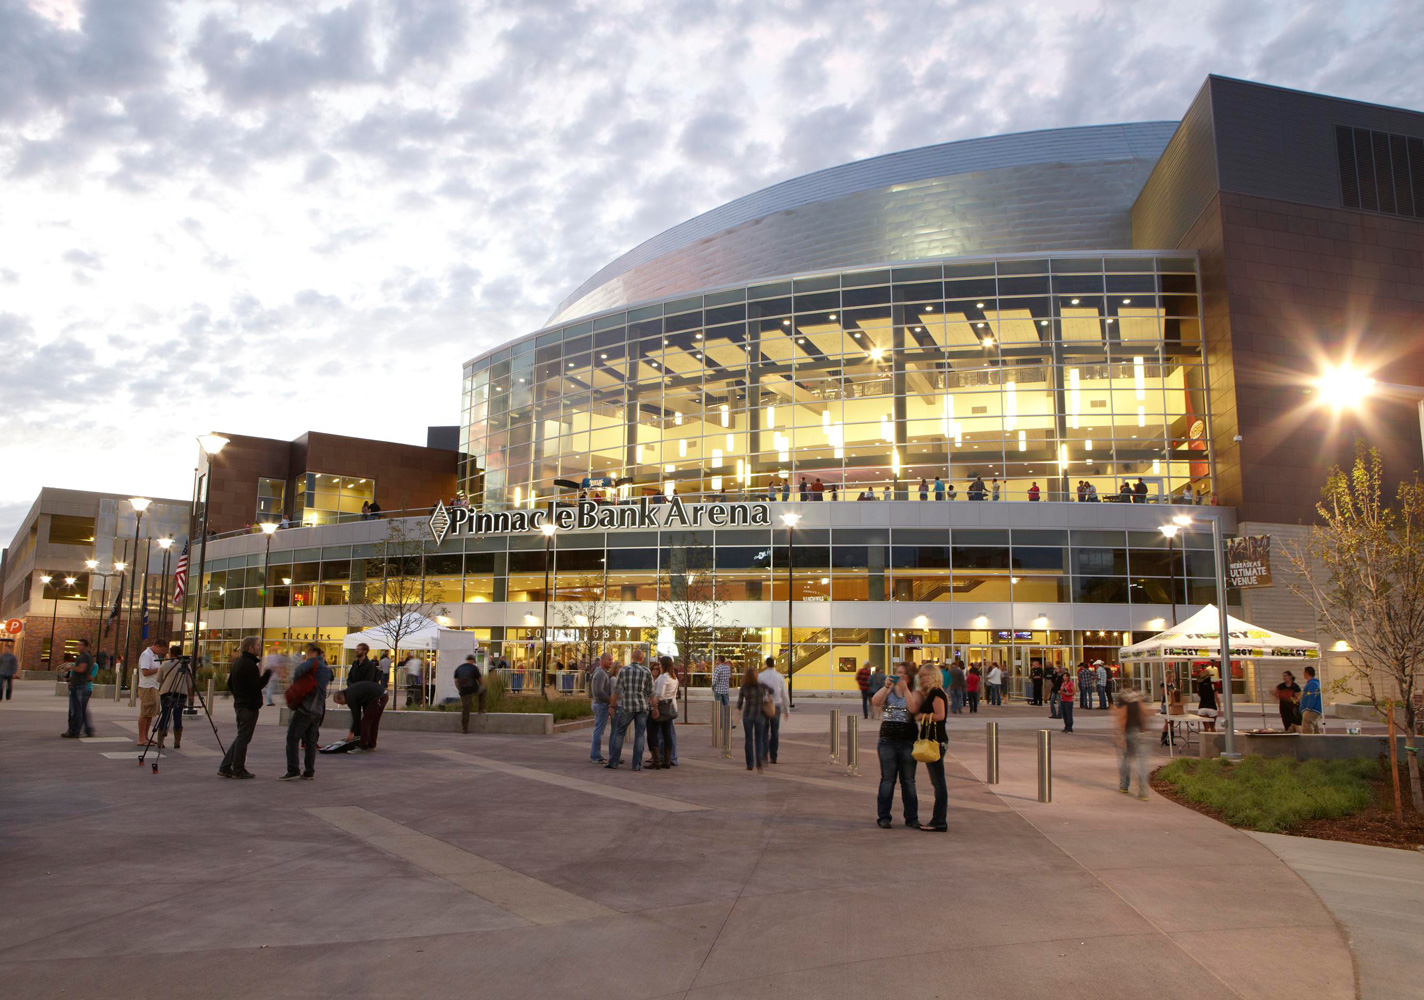 Lincoln, Nebraska: Pinnacle Bank Arena